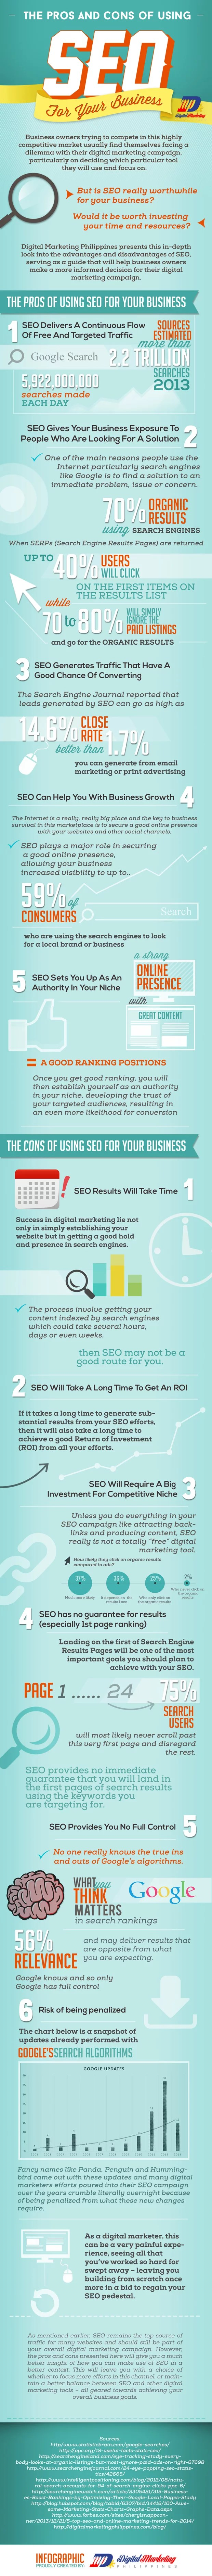 The Pros and Cons of Using SEO for Your Business (Infographic) - An Infographic from Digital Marketing Philippines